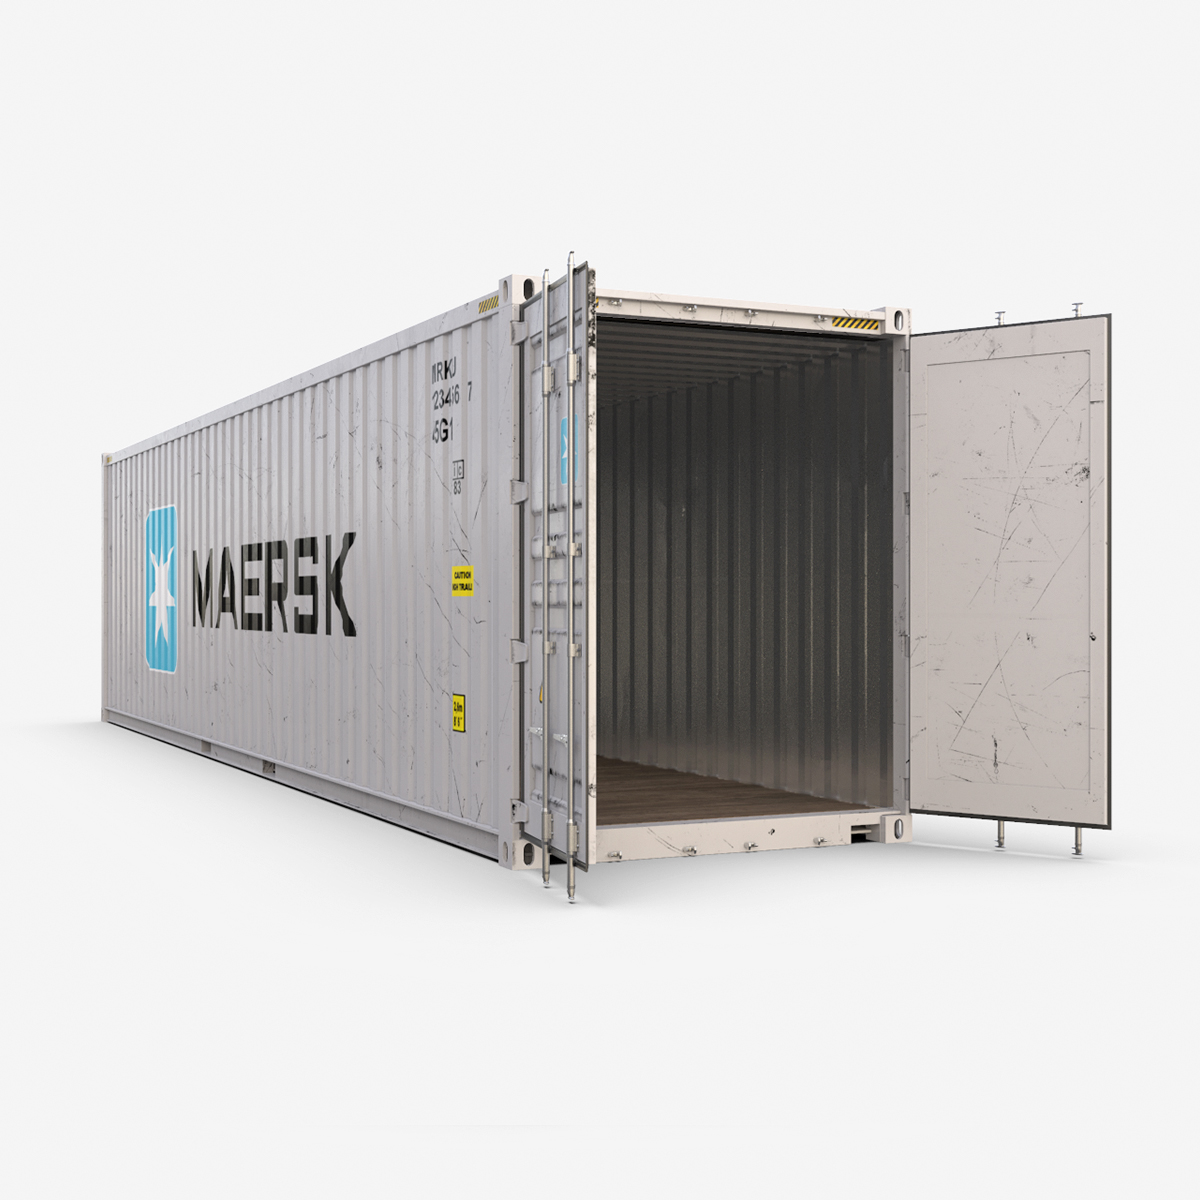 40 feet high cube maersk shipping container 3d model max fbx ma mb texture obj 278427